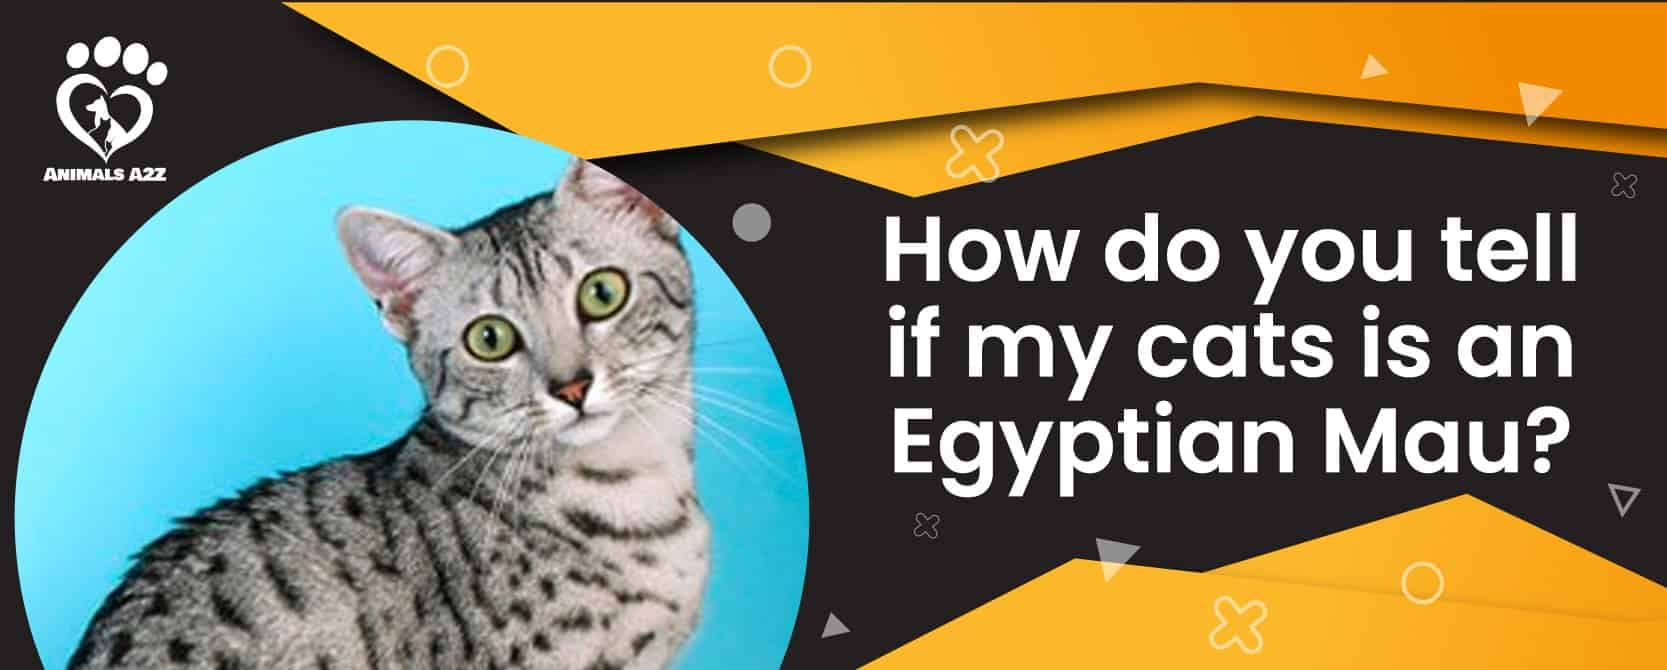 How do you tell if my cat is an Egyptian Mau?